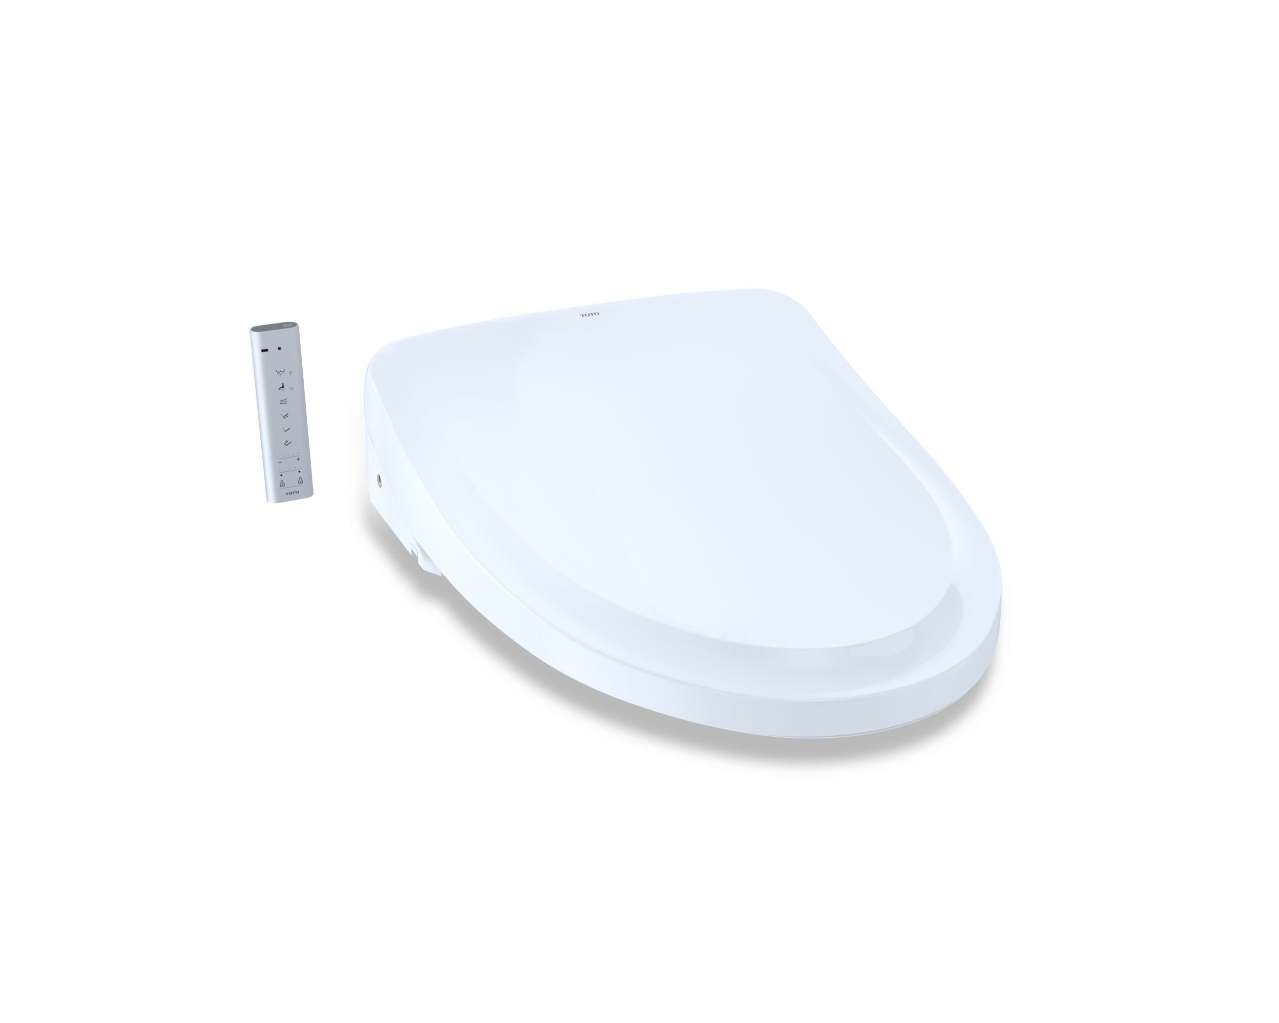 Marvelous Toto Sw3054 Washlet S550E Elongated Bidet Toilet Seat With Auto Open And Close Classic Lid And Ewater Alphanode Cool Chair Designs And Ideas Alphanodeonline